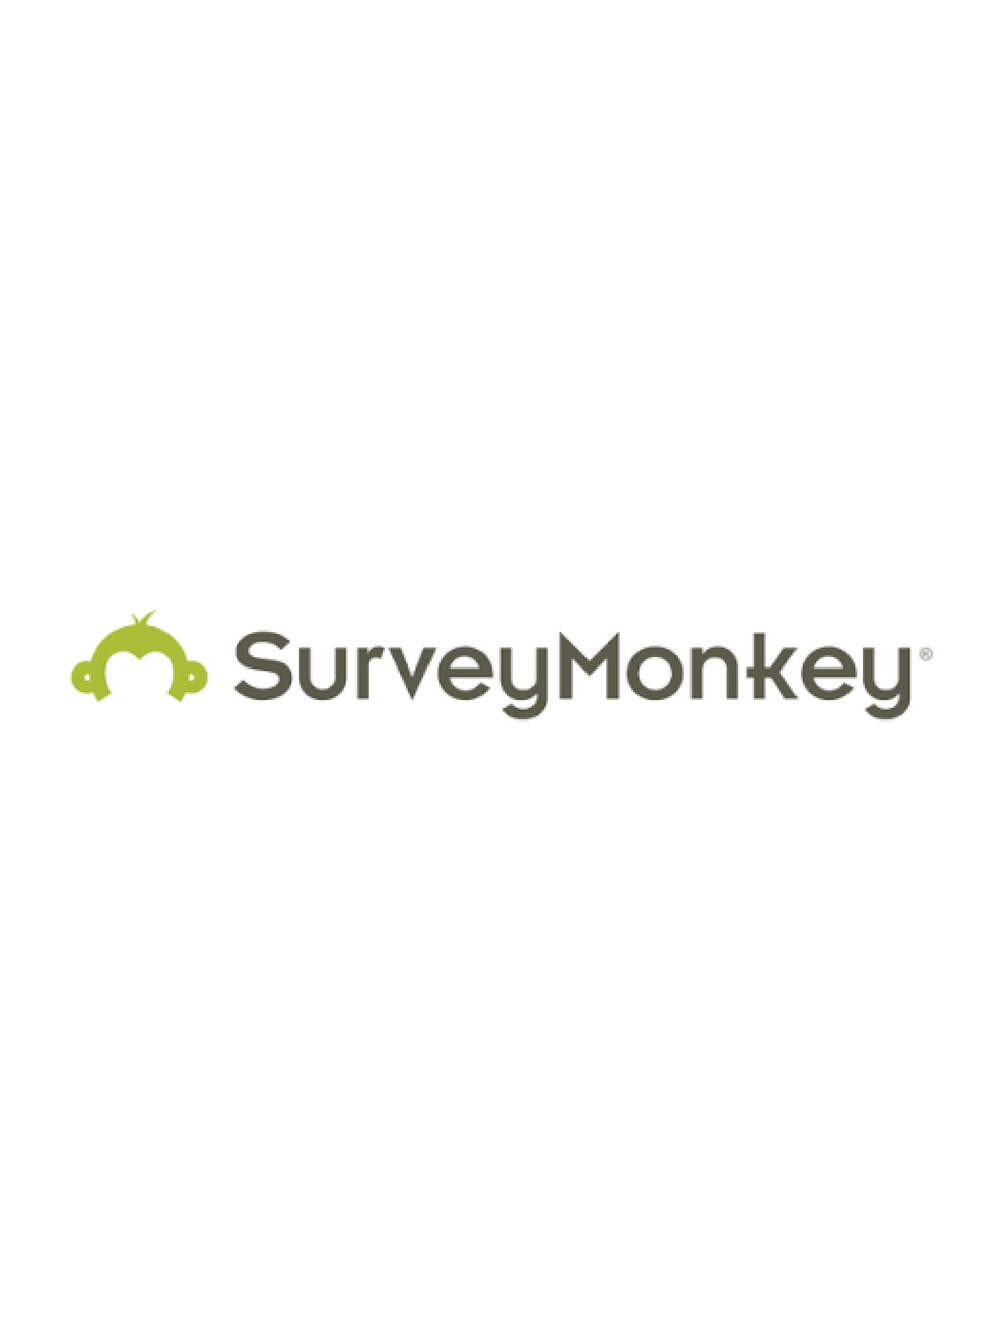 SURVEY MONKEYvisit the site